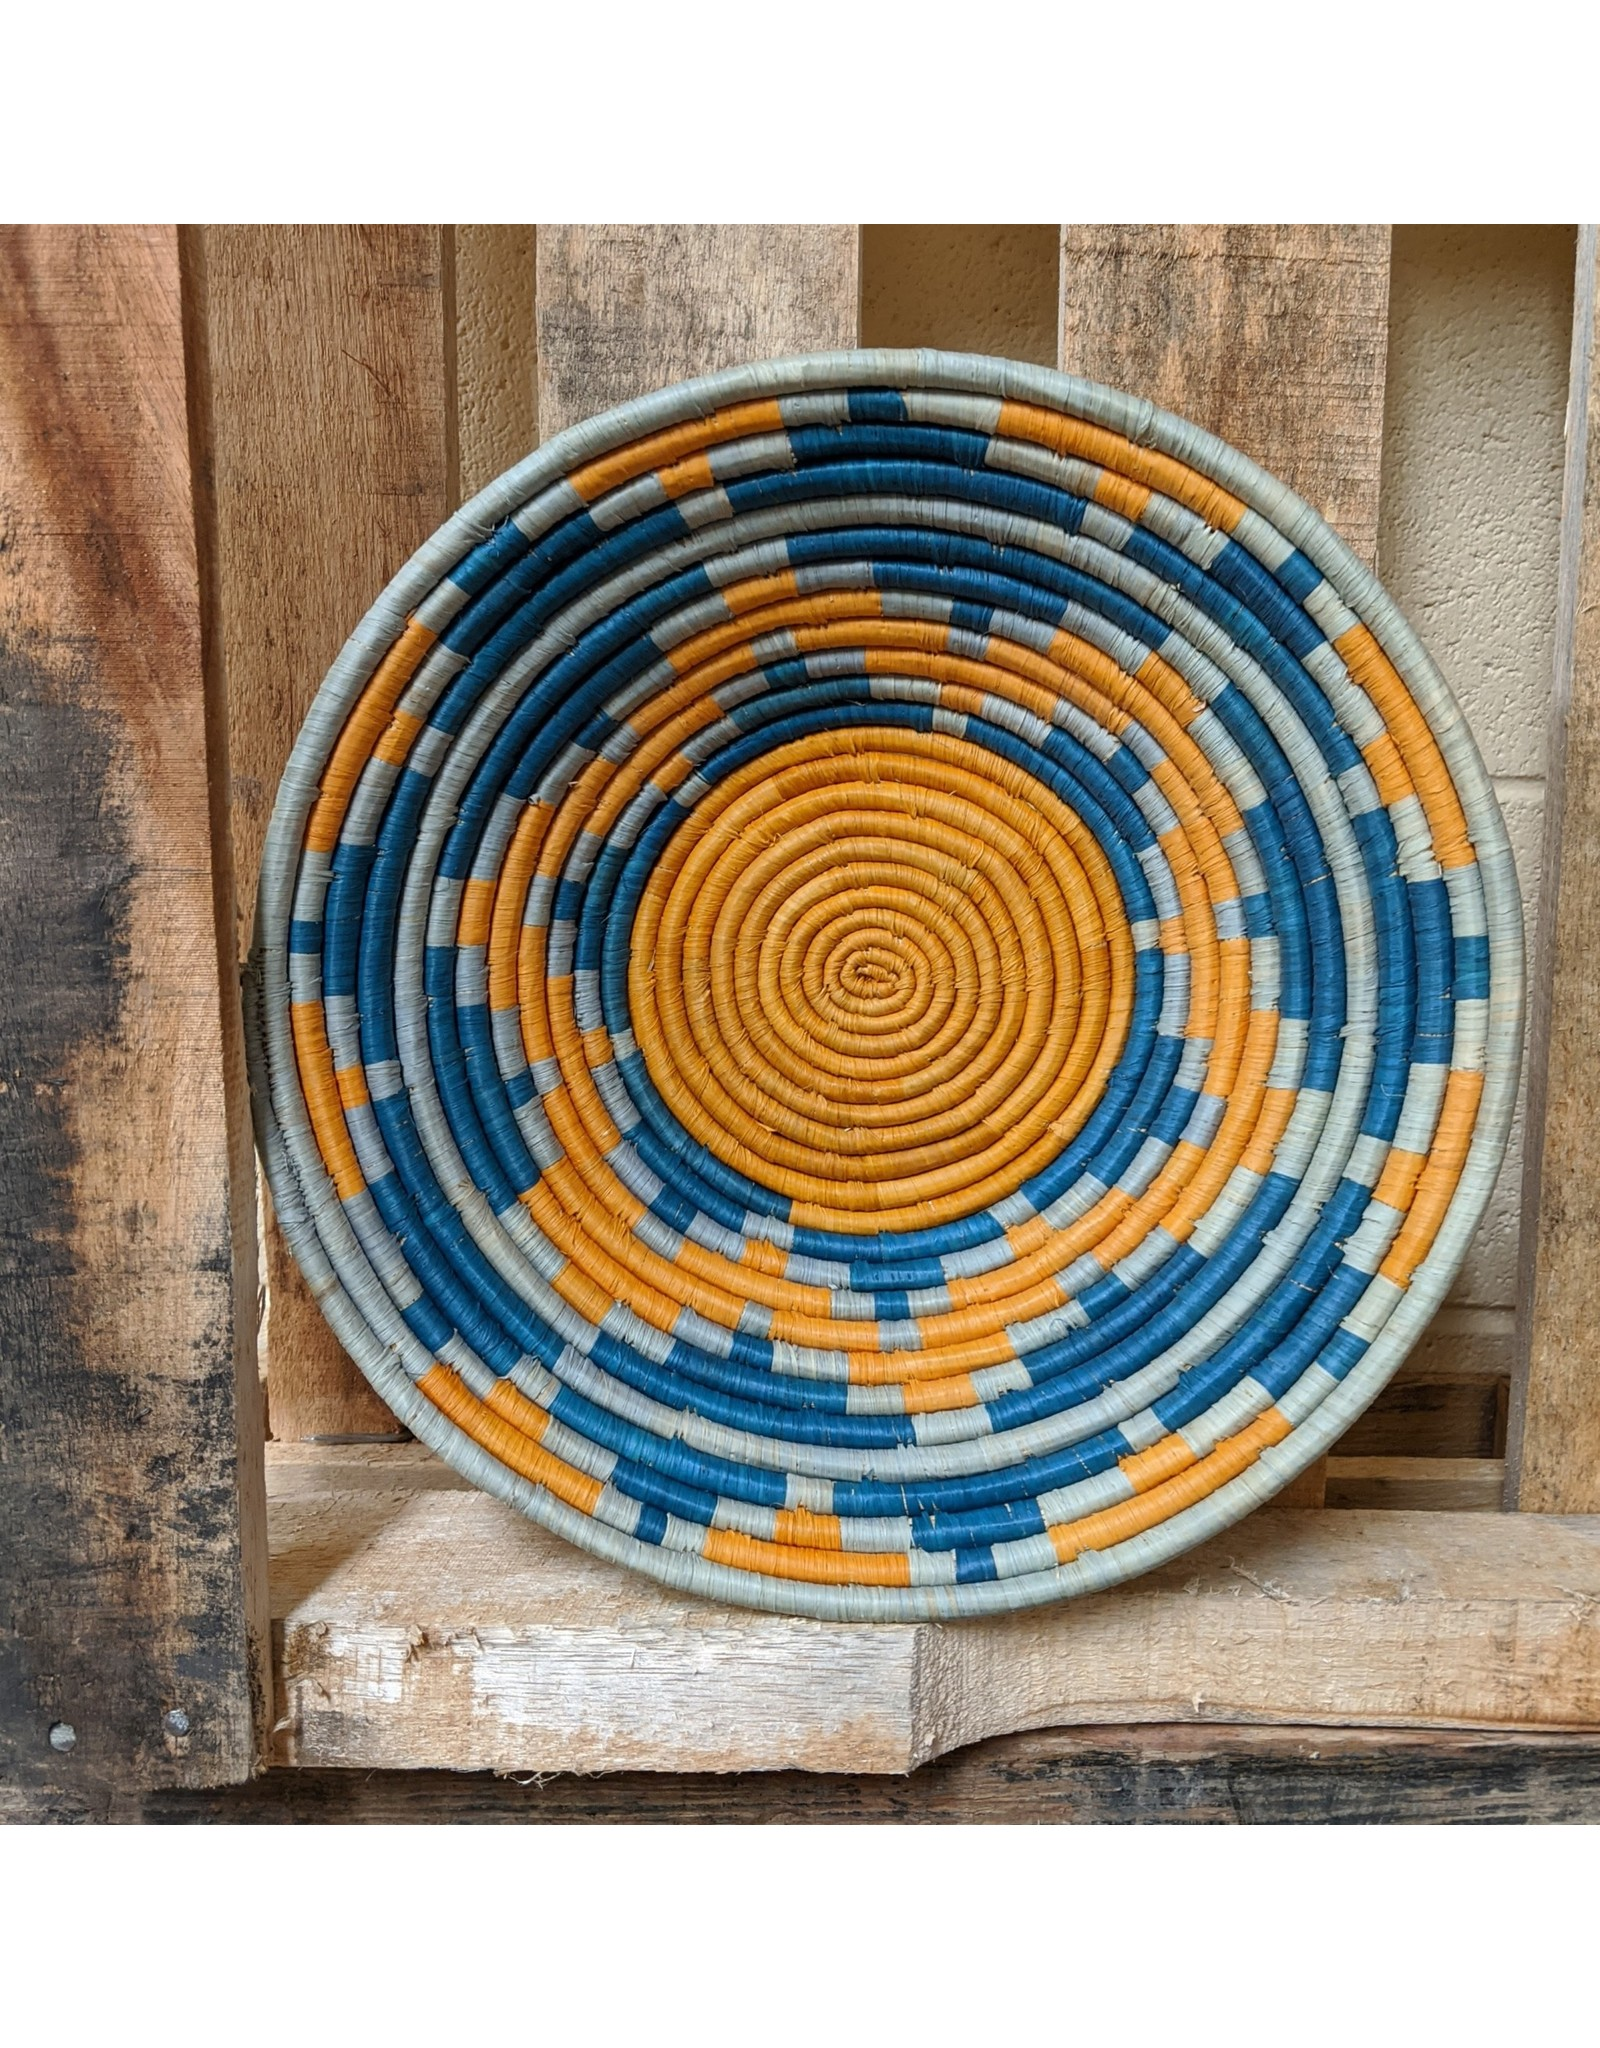 Ten Thousand Villages Sunshine's Burst Woven Basket